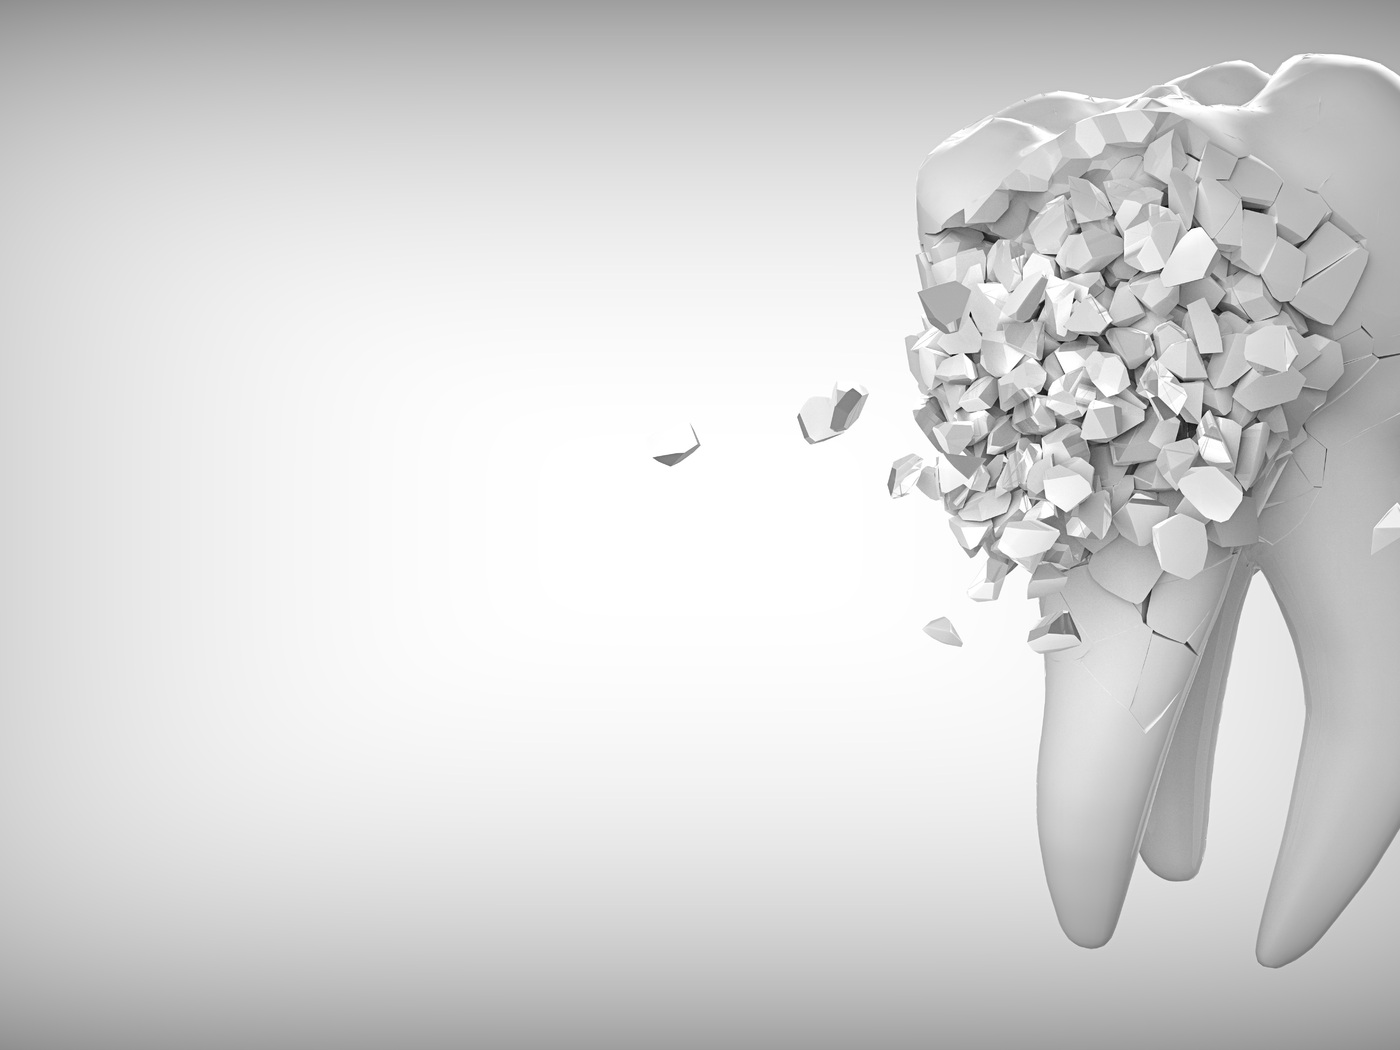 tooth-creative-art-8k-u3.jpg